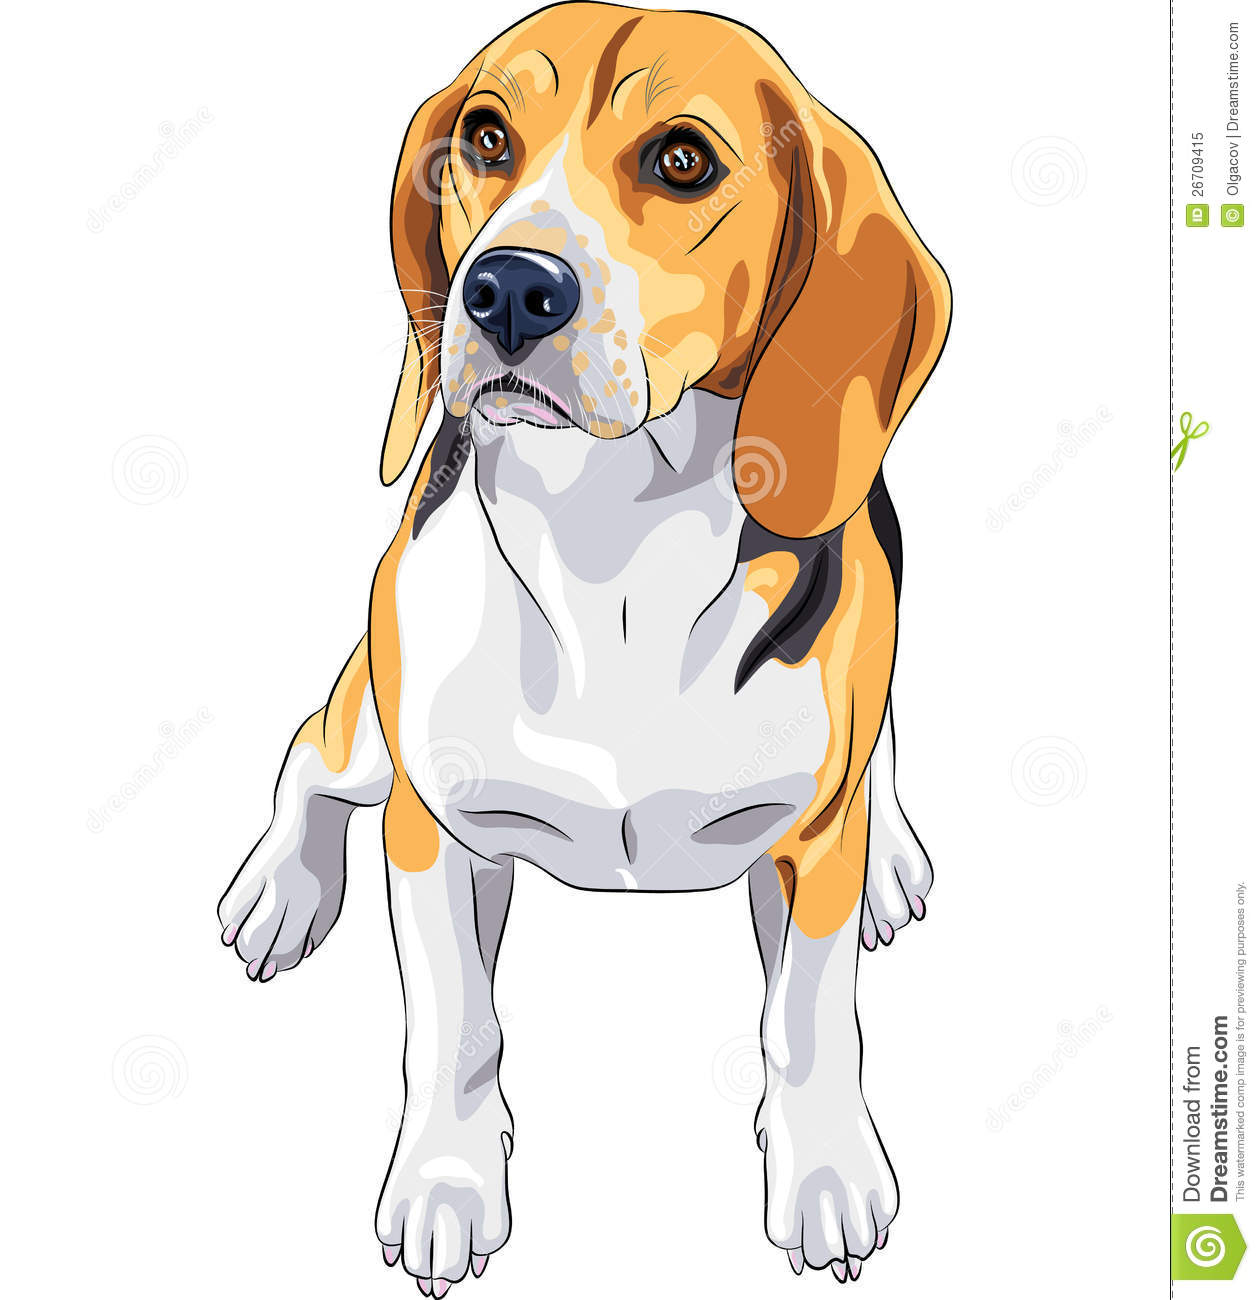 Cool Decorating Ideas besides Wall Paintings Ideas furthermore Royalty Free Stock Photo Vector Sketch Dog Beagle Breed Sitting Image26709415 in addition Cottage Style Design furthermore Windows Logo Wallpaper In  puters Microsoft Desktop Wallpapers. on red living room ideas for spring